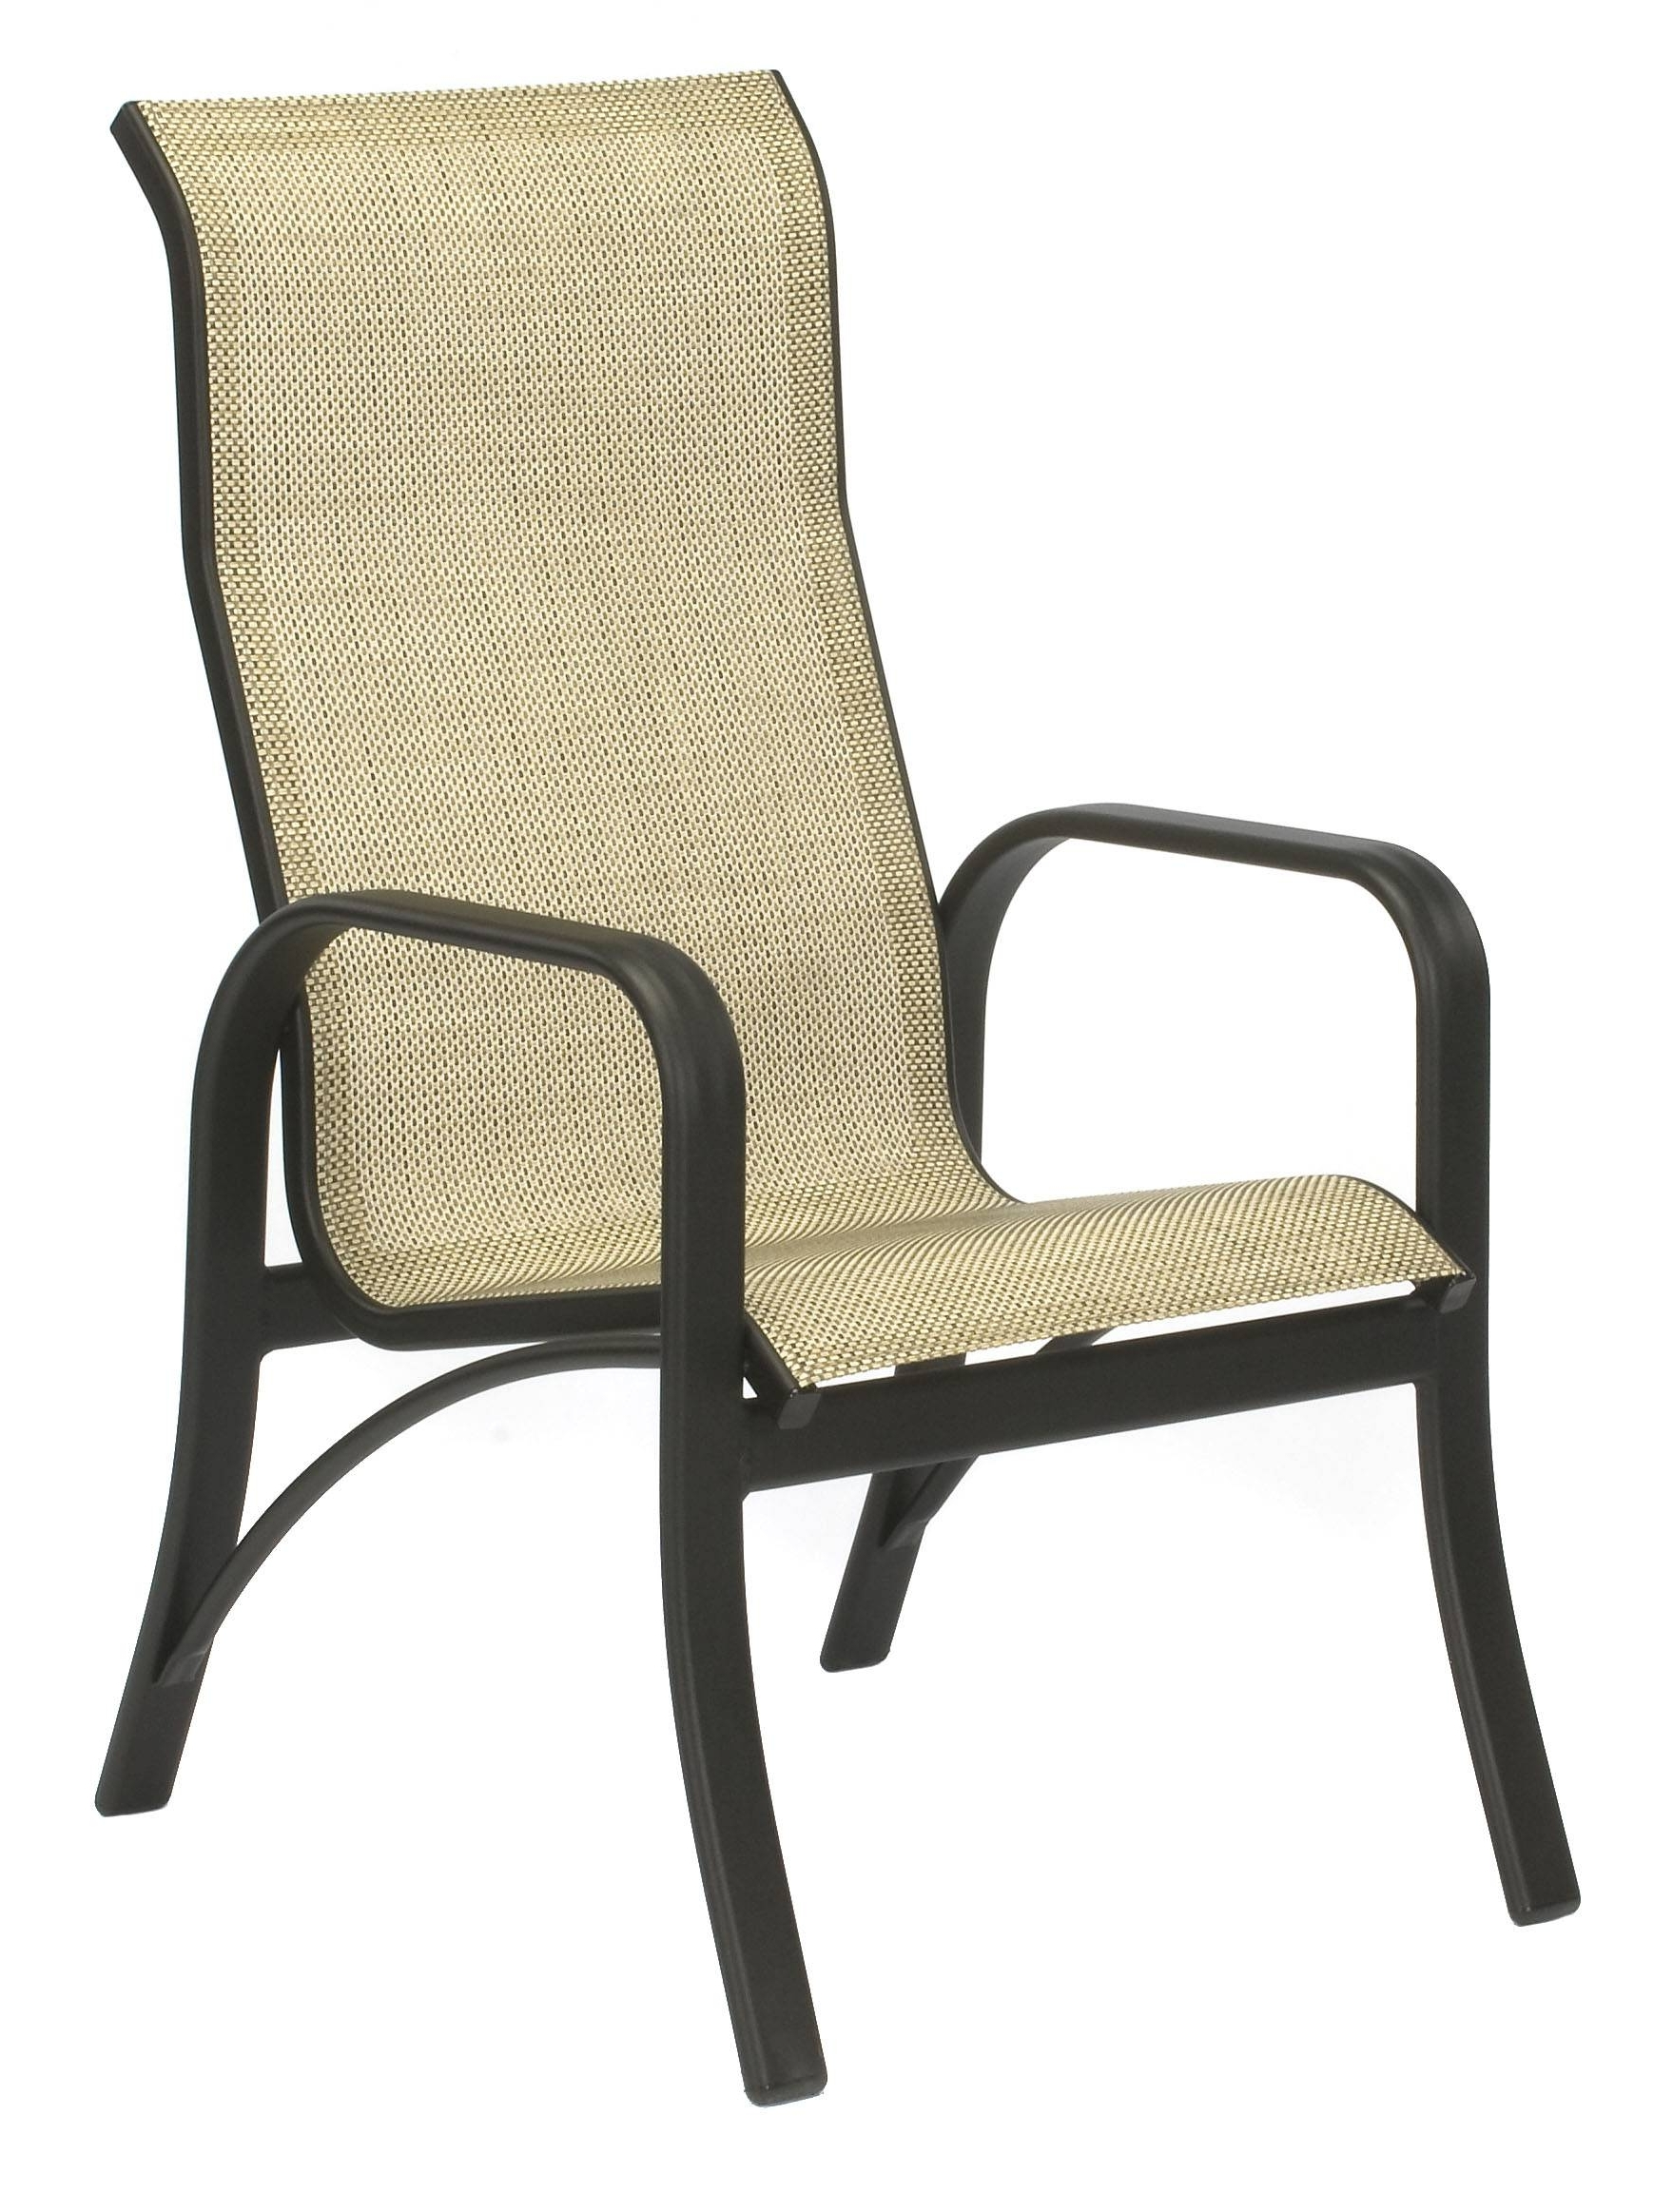 Most Current Sling Black Outdoor Chairs Bamboo Set Of Walmart Marvellous Swivel Within Patio Sling Rocking Chairs (View 11 of 15)